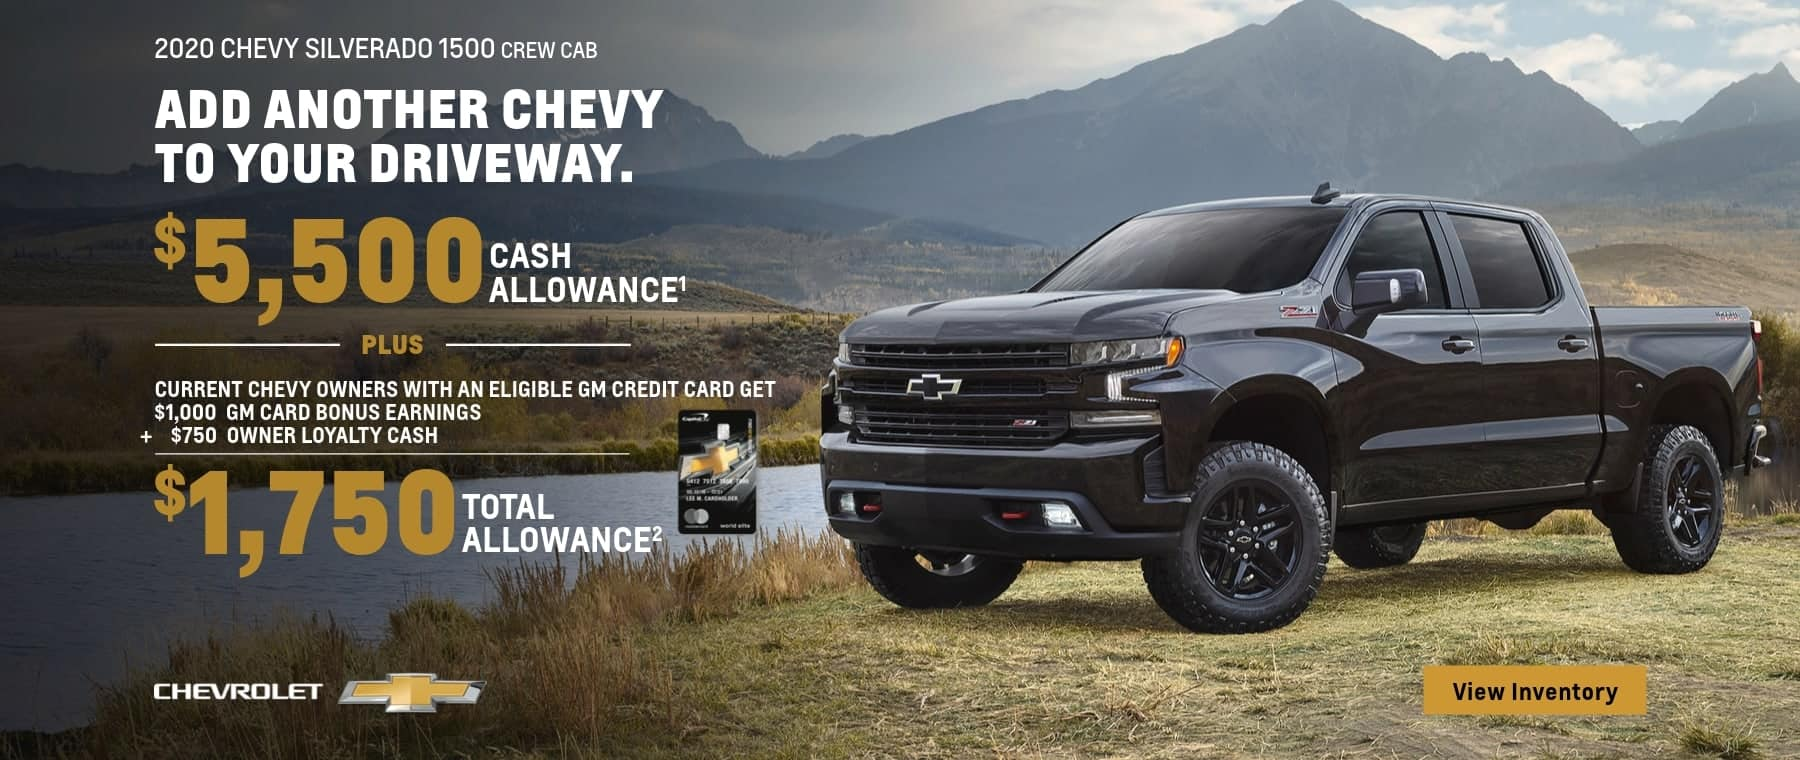 2020 Chevy Silverado 1500 Crew Cab $5,500 cash allowance plus current Chevy owners with an Eligible GM Credit card get $1,000 GM Card bonus earnings plus $750 Owner loyalty Cash. that's $1,750 Total Allowance.